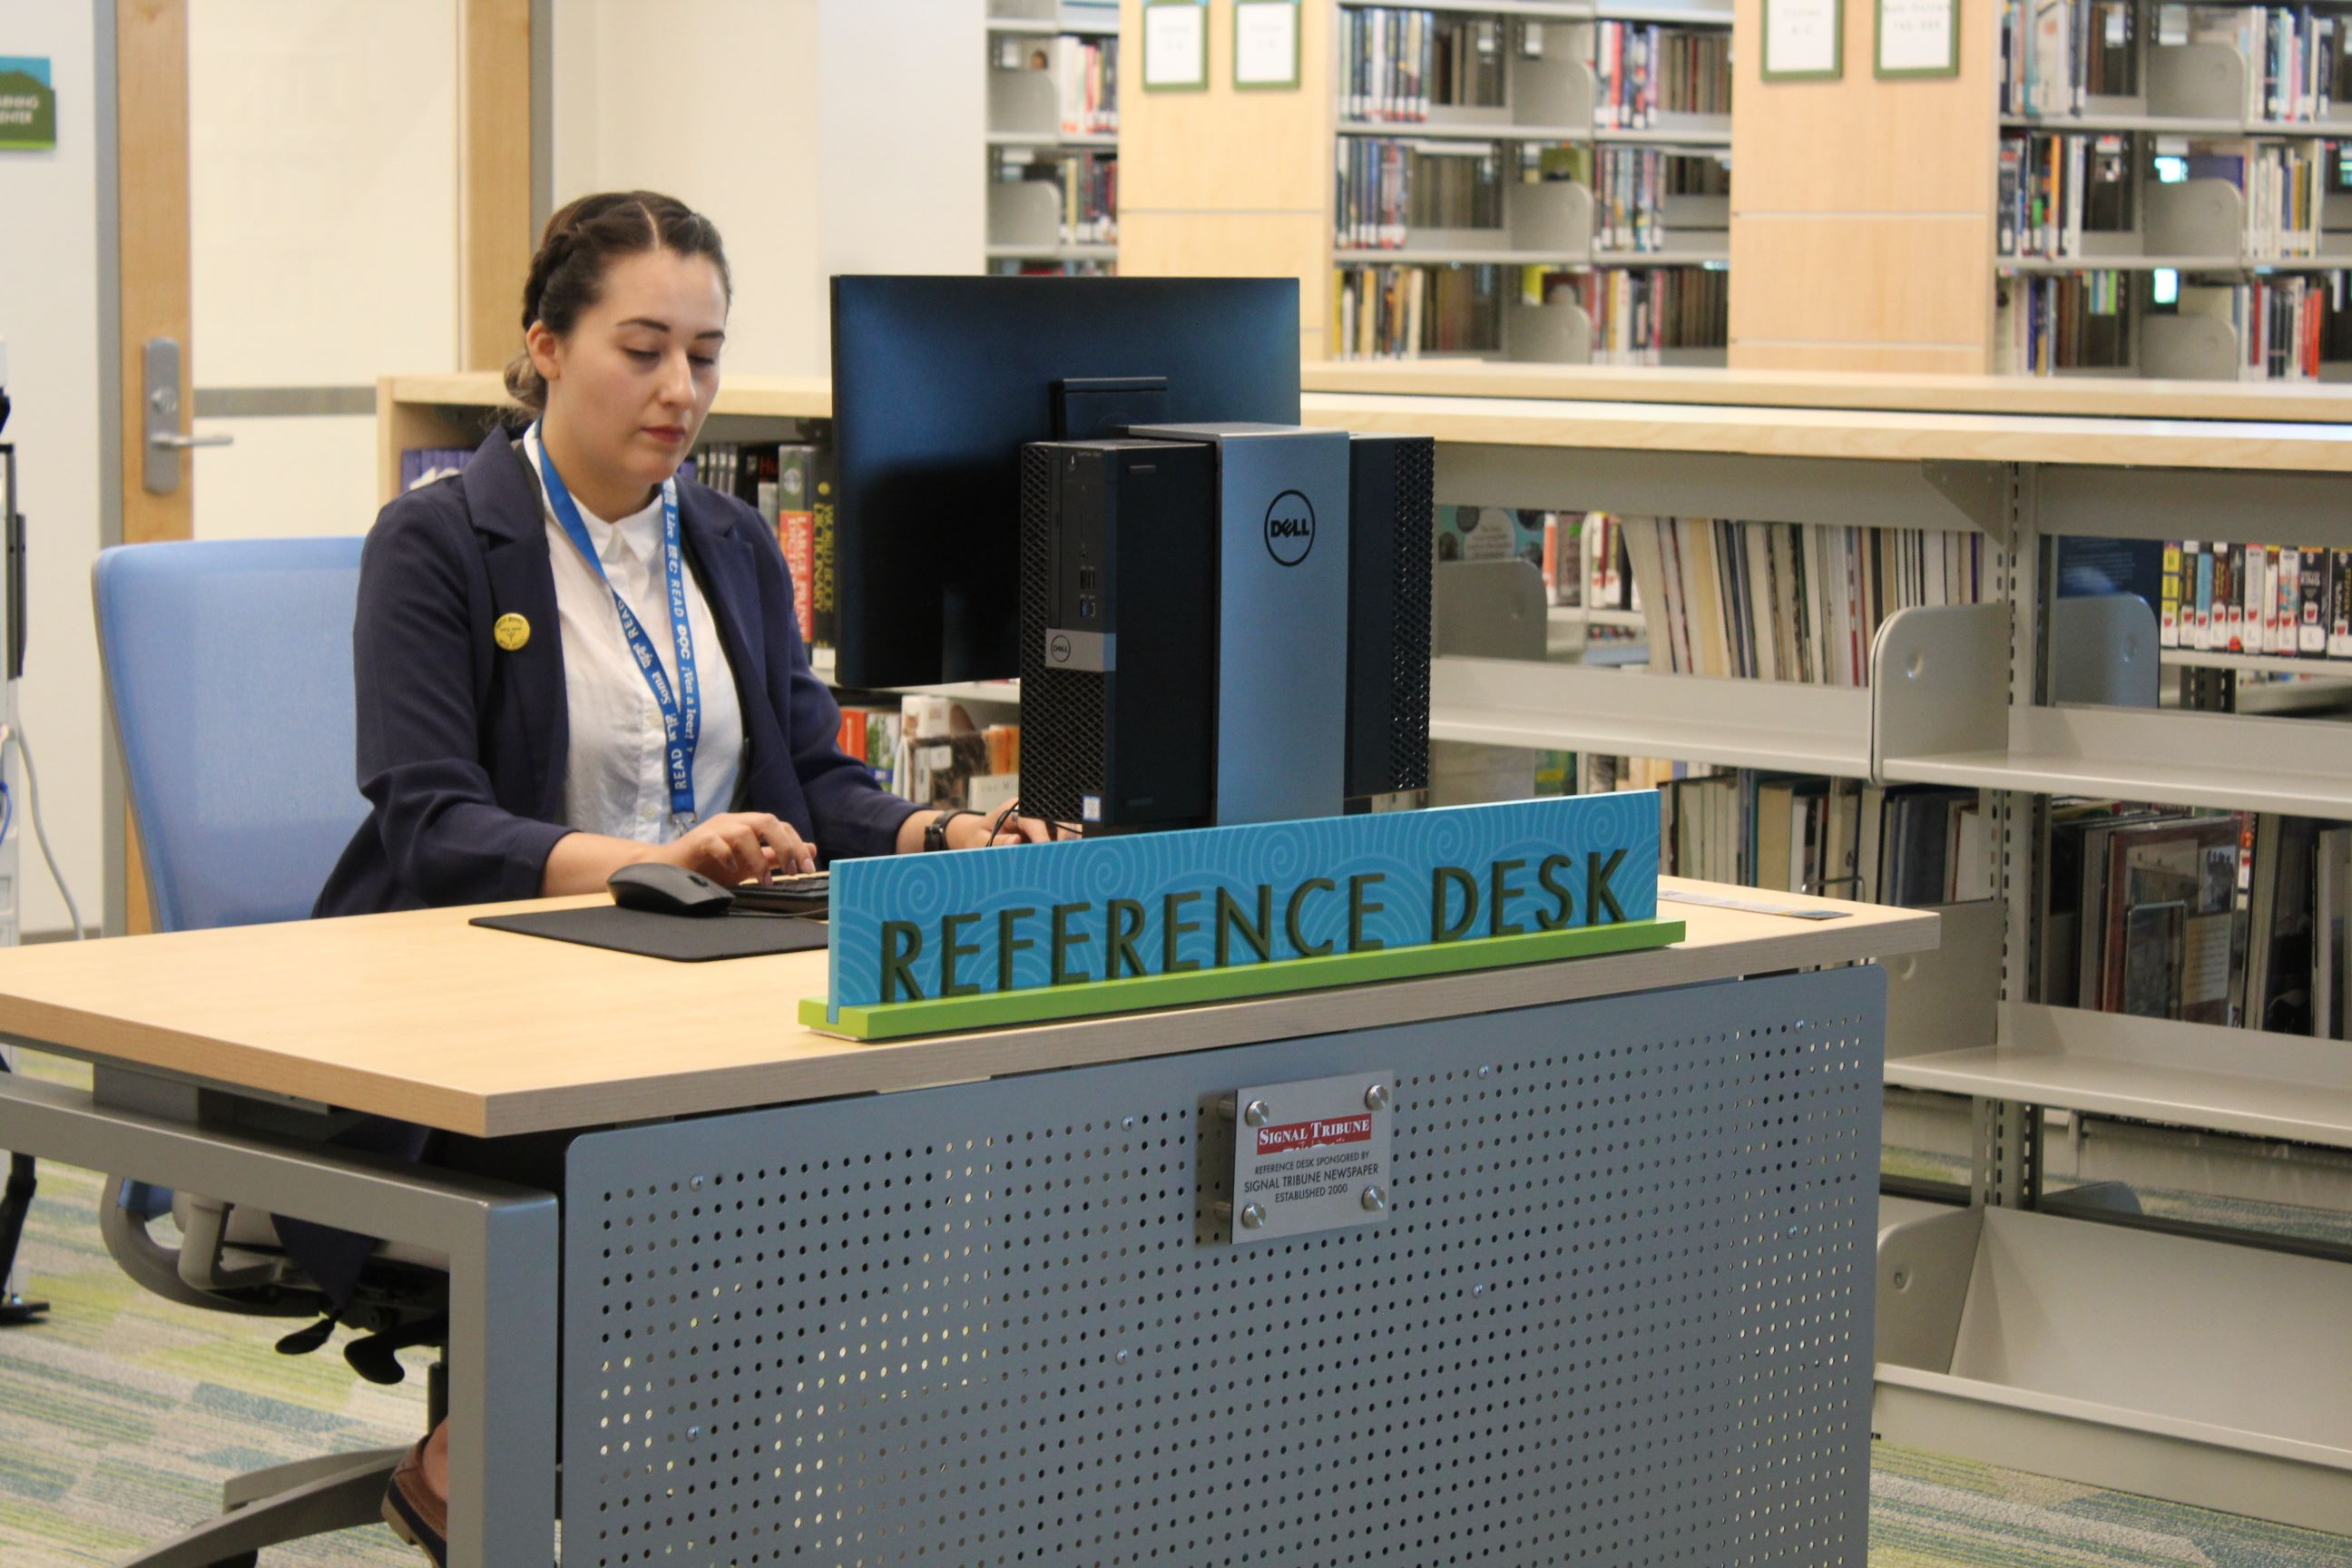 Library Assistant Sitting at Reference Desk